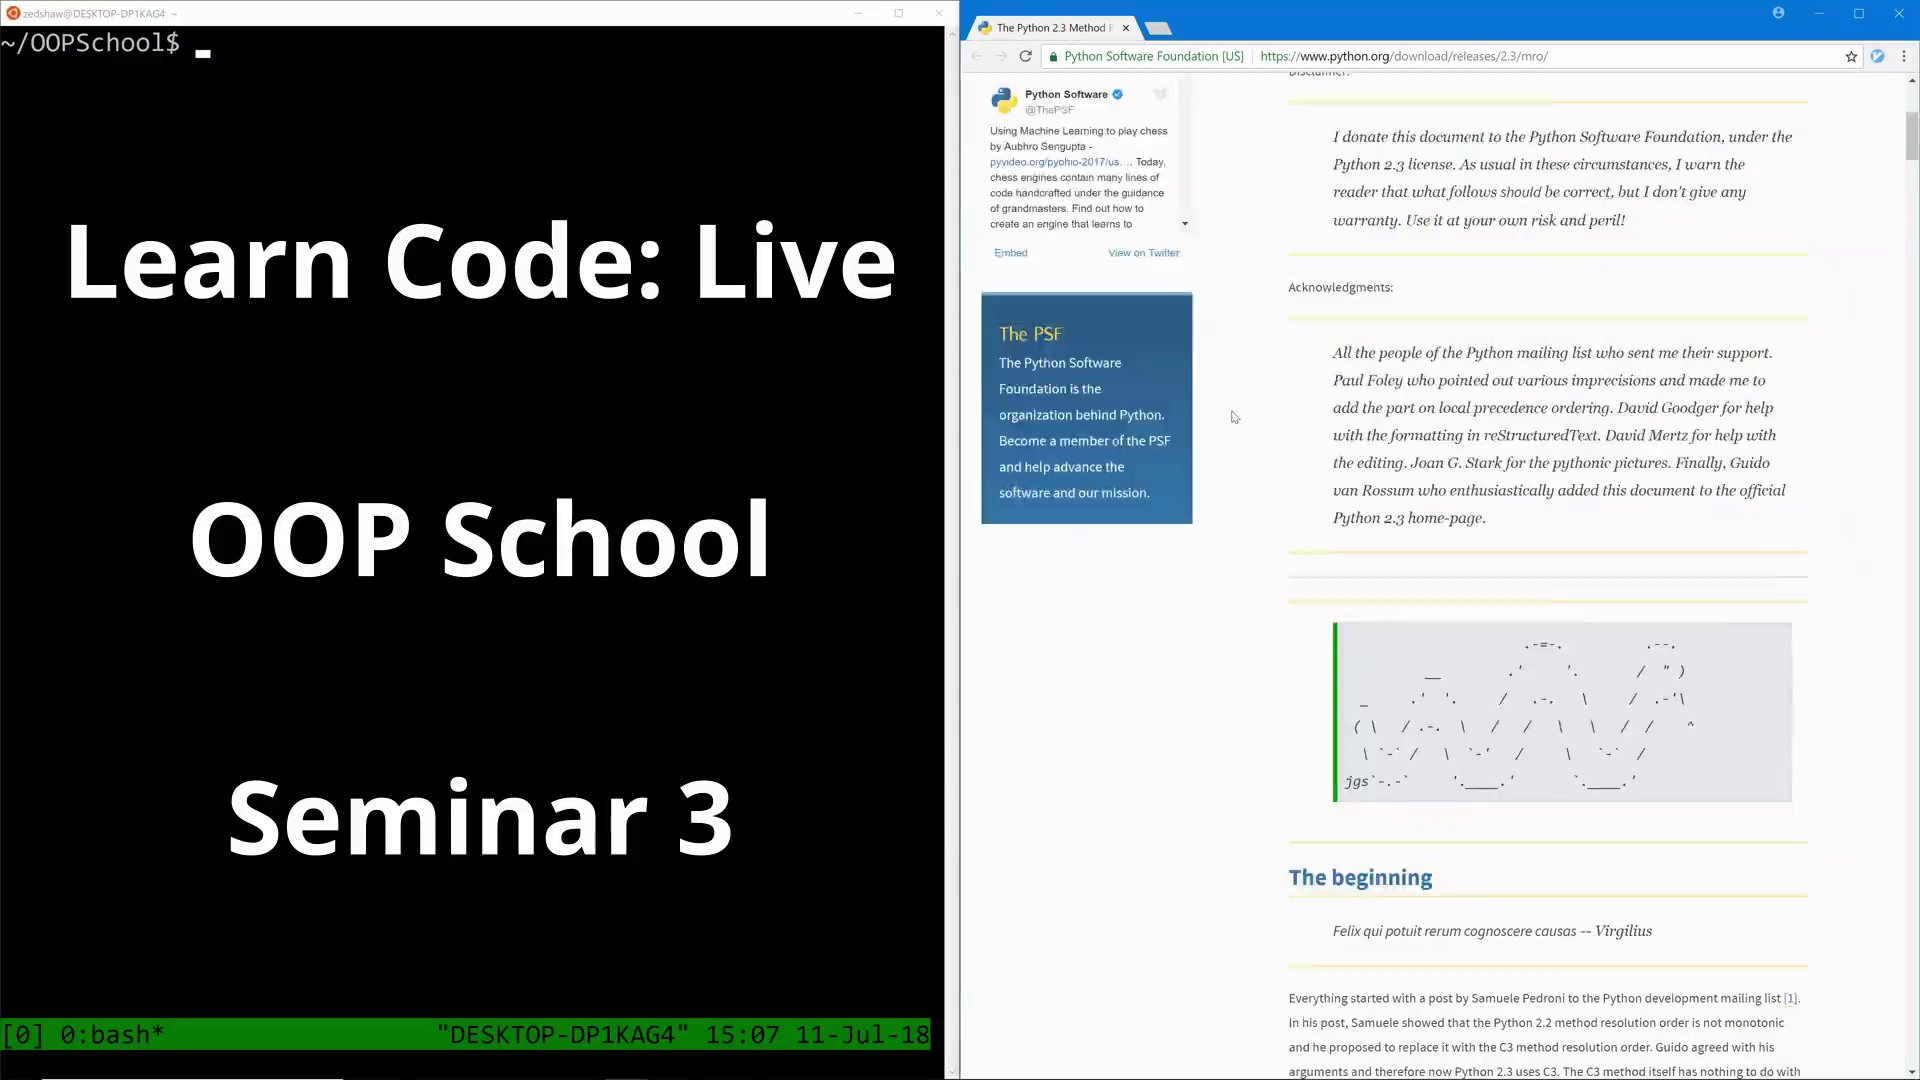 Learn Code The Hard Way - LCLive OOPSchool S3